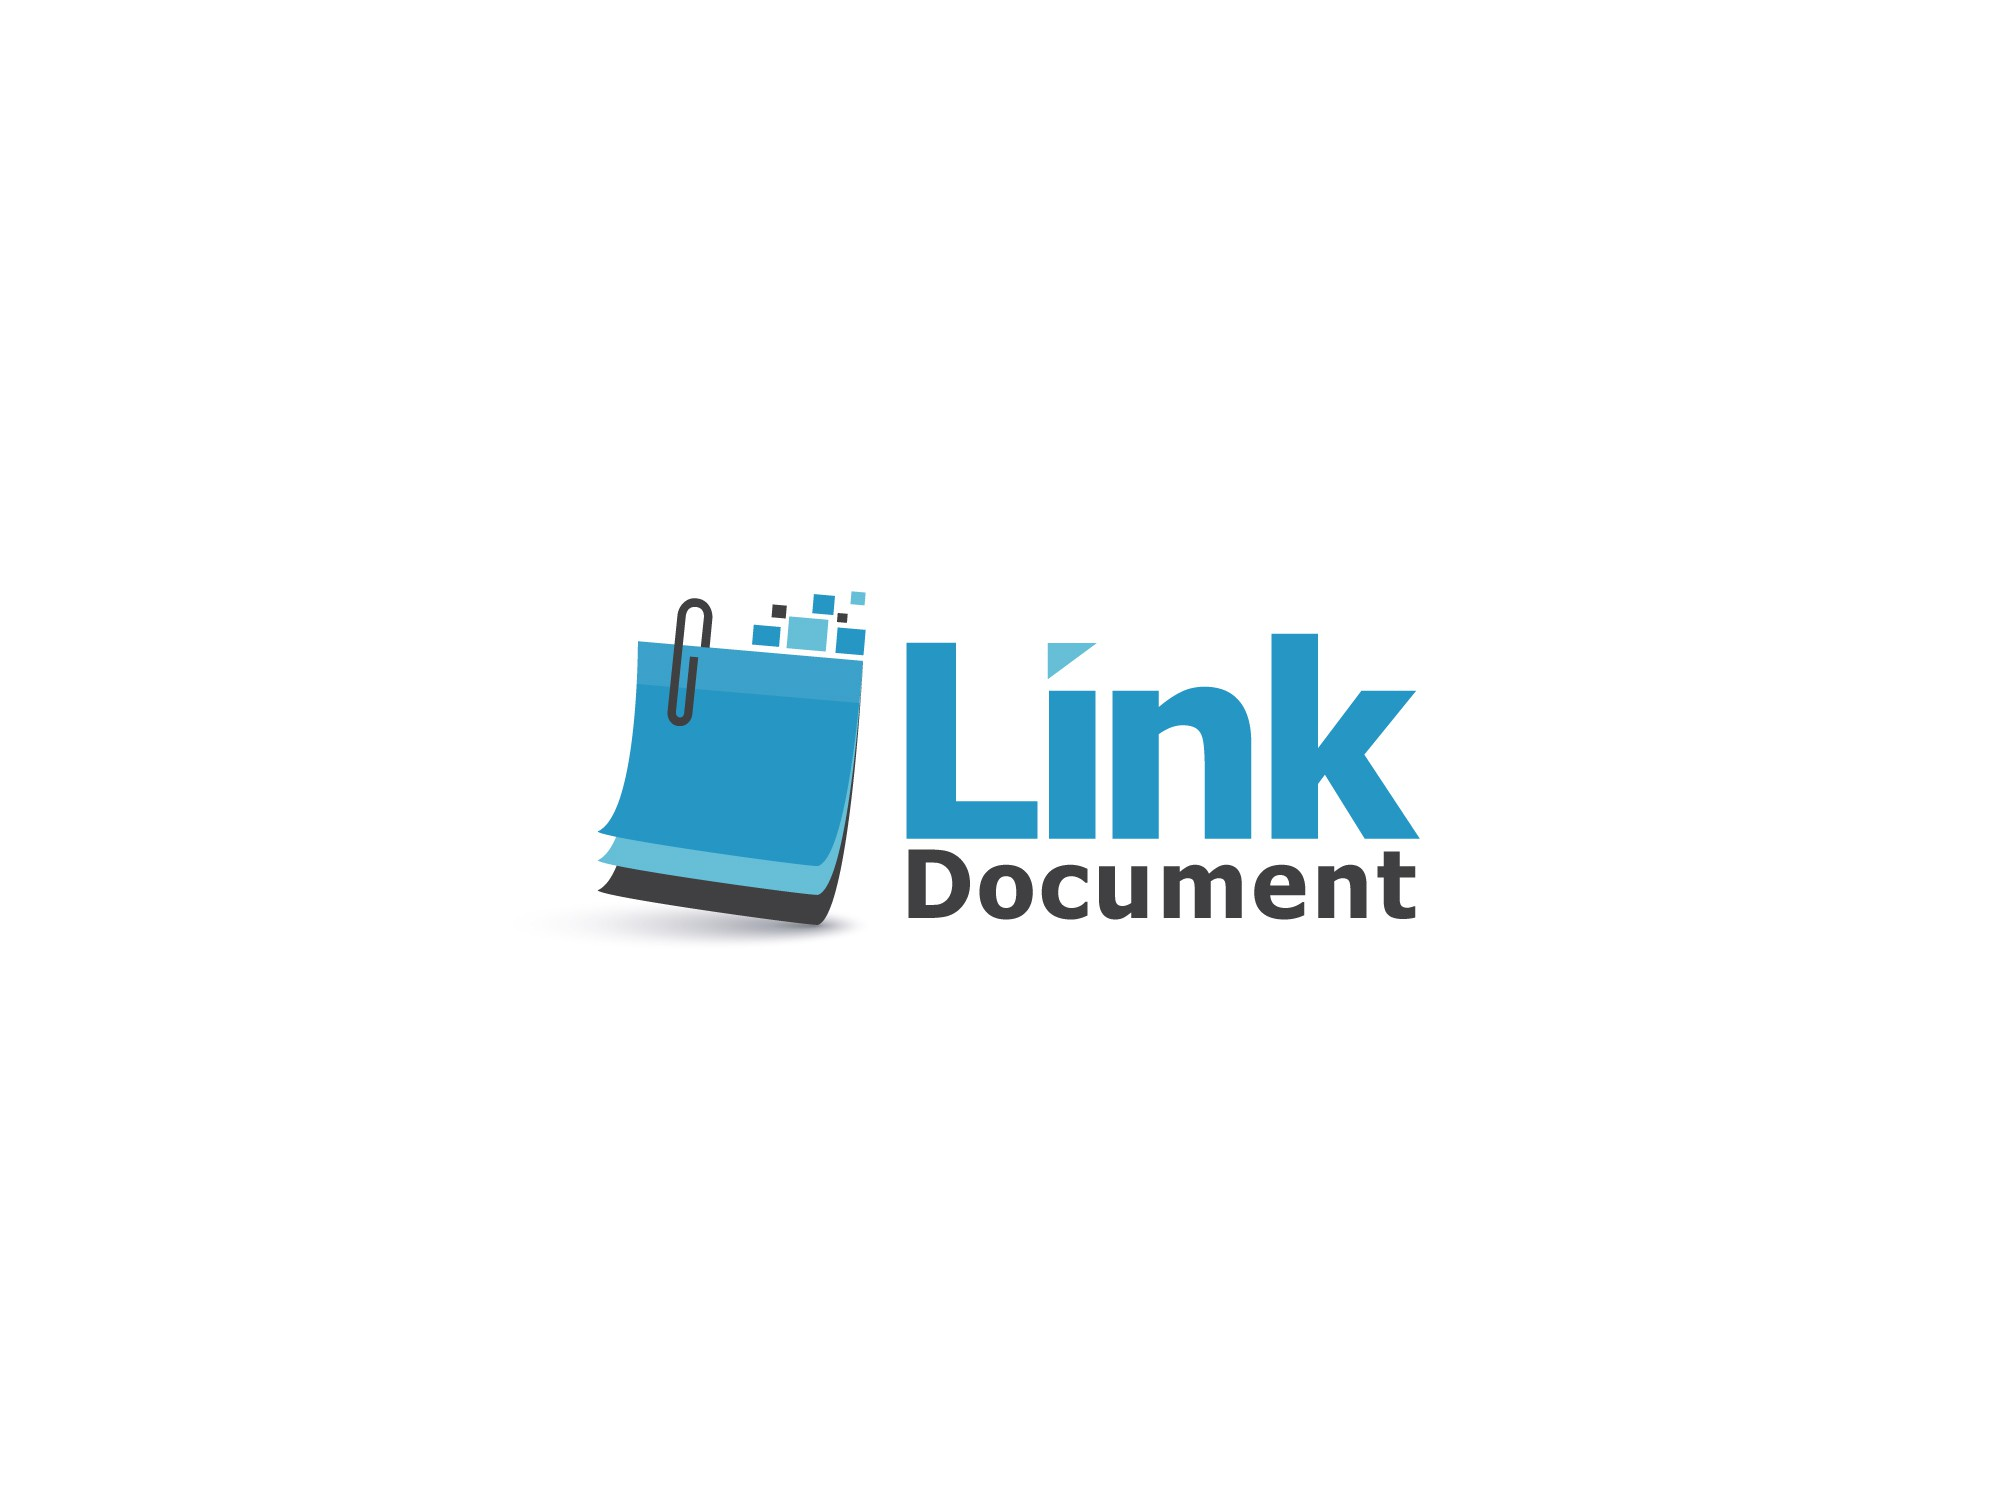 Creating a memorable long lasting logo design for my document linking business